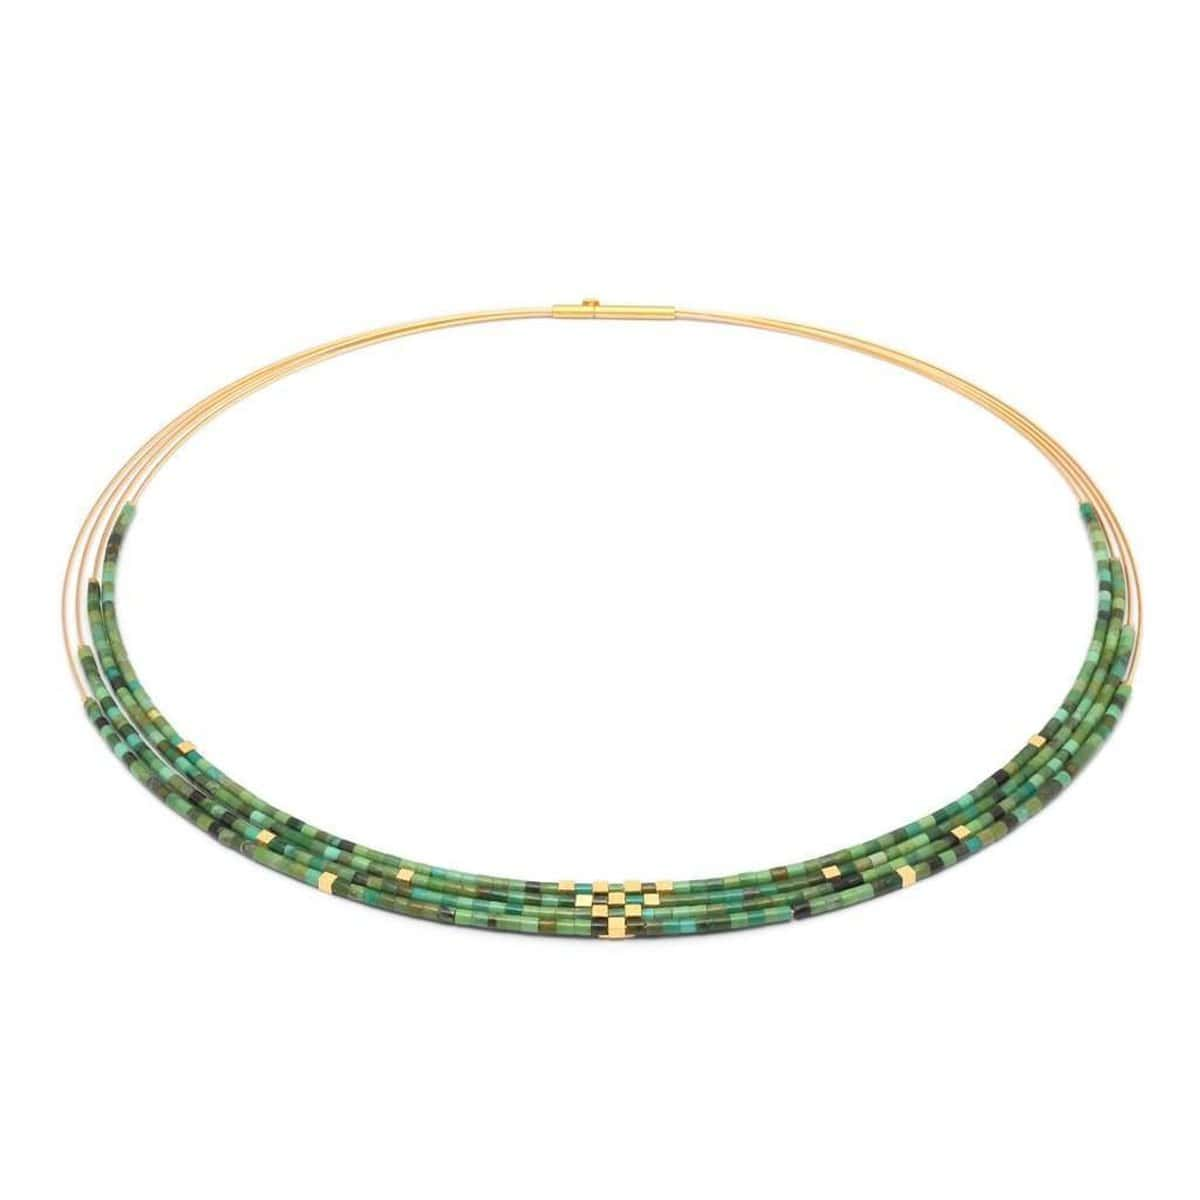 Cuva Green Turquoise Necklace - 85455356-Bernd Wolf-Renee Taylor Gallery